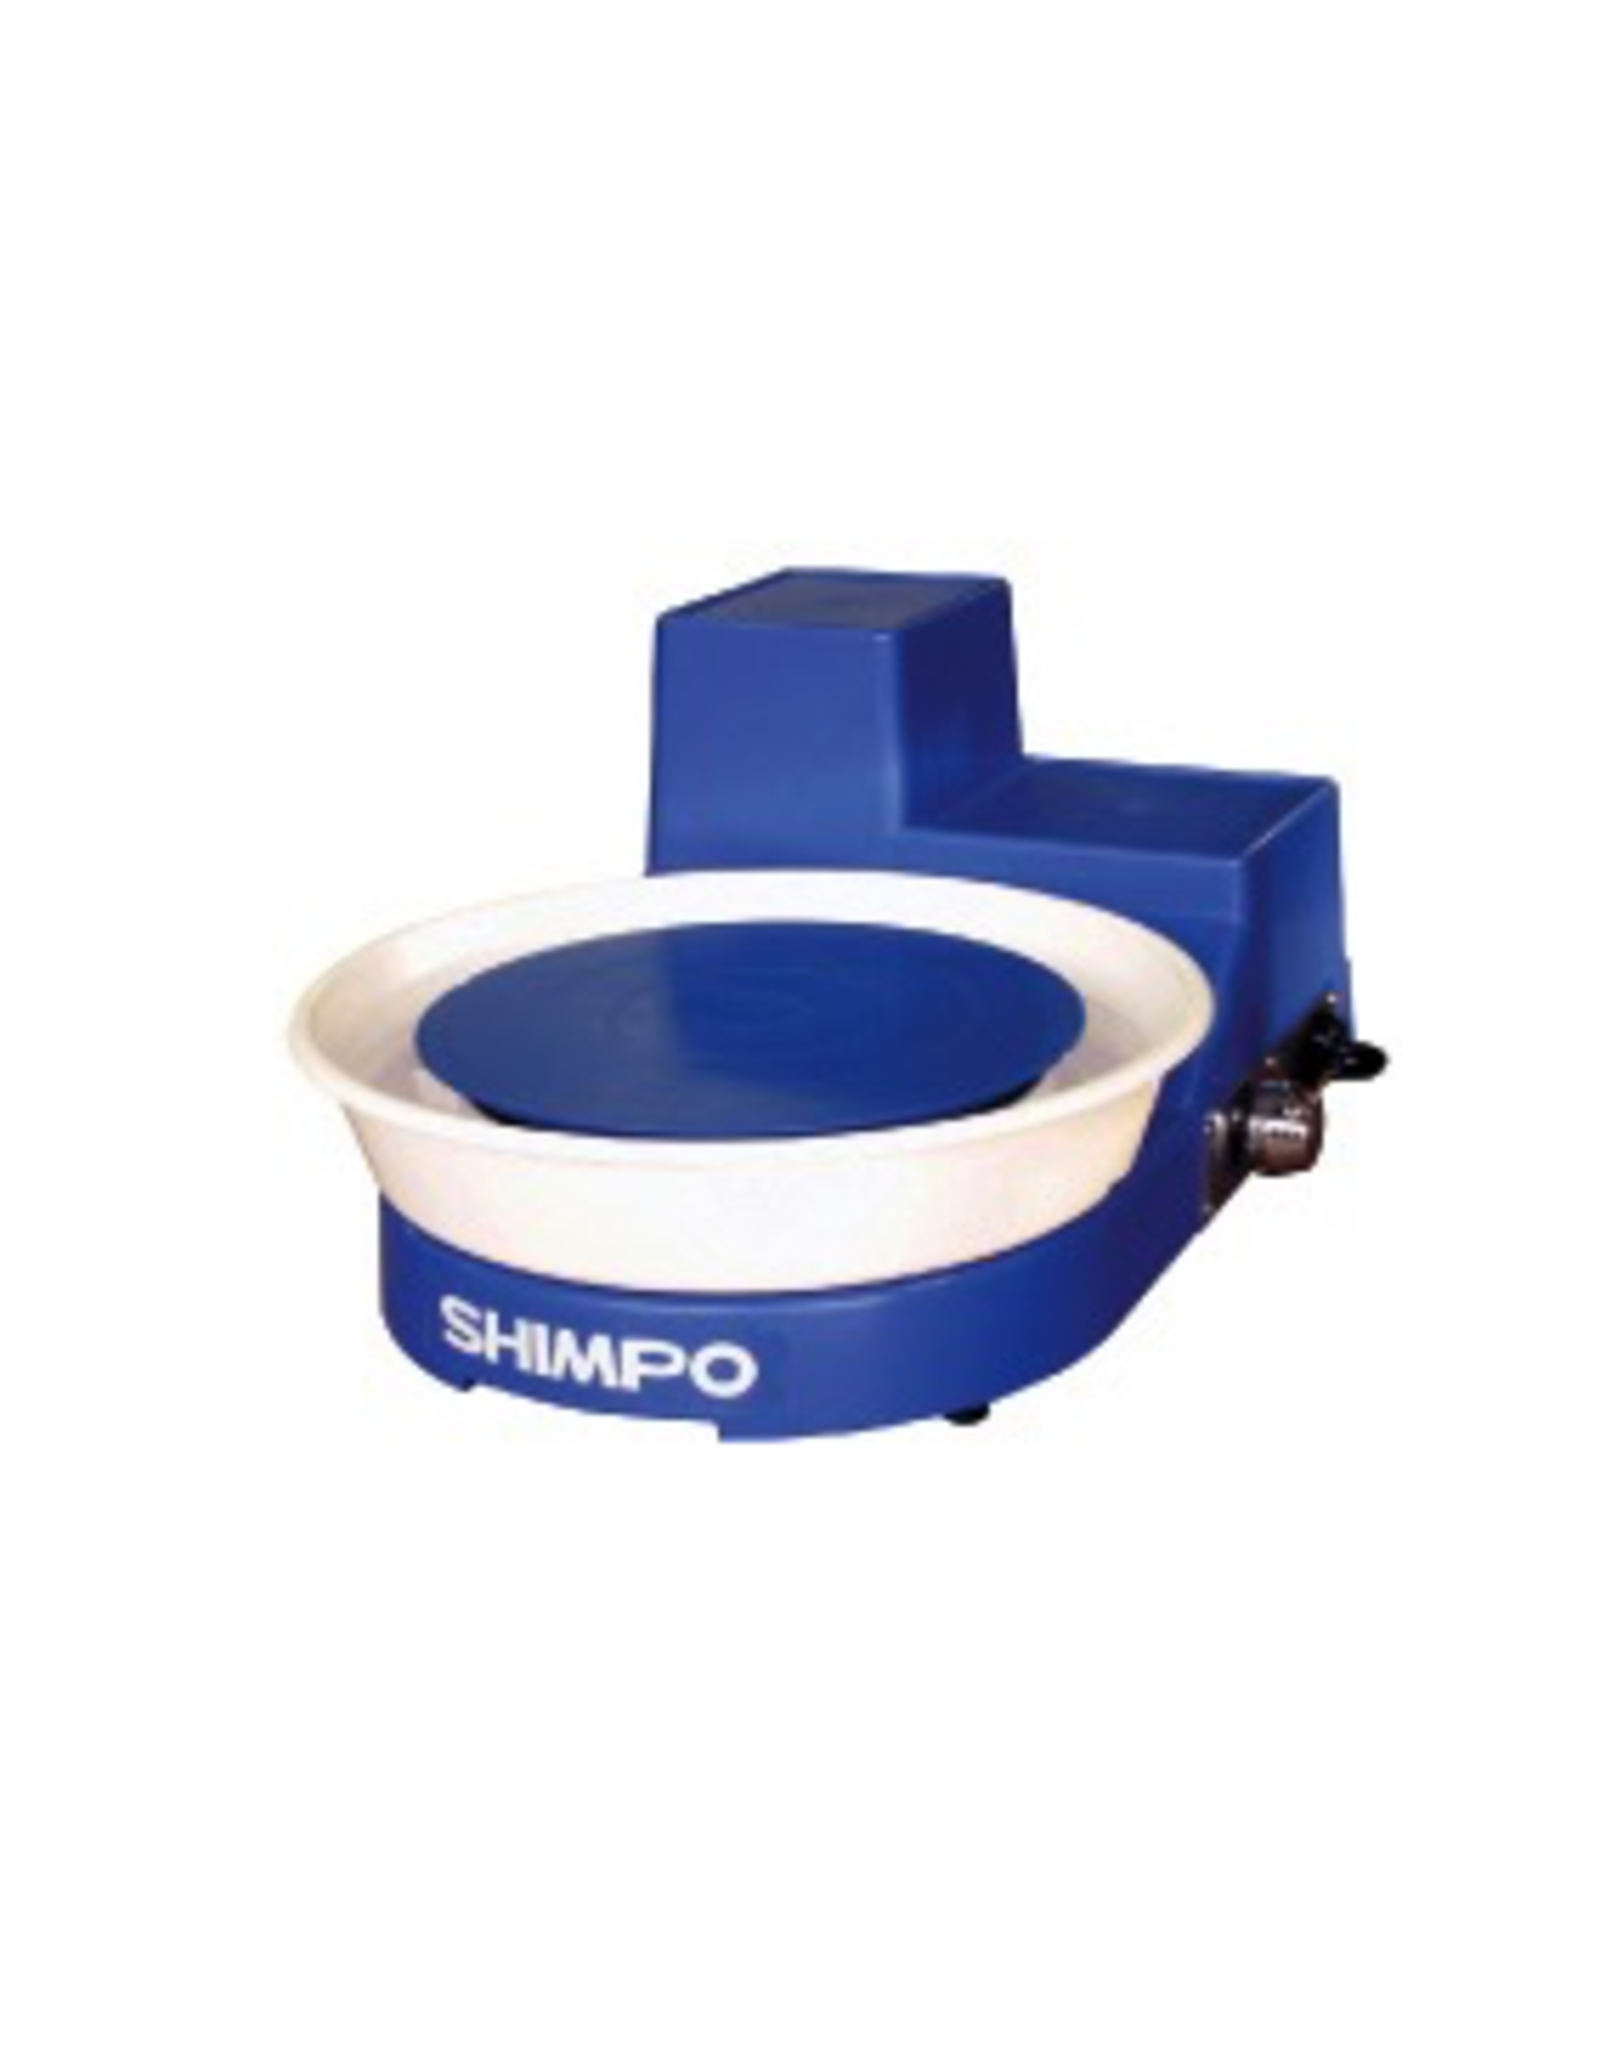 Shimpo RK5T (f) table top potters wheel (with foot pedal)